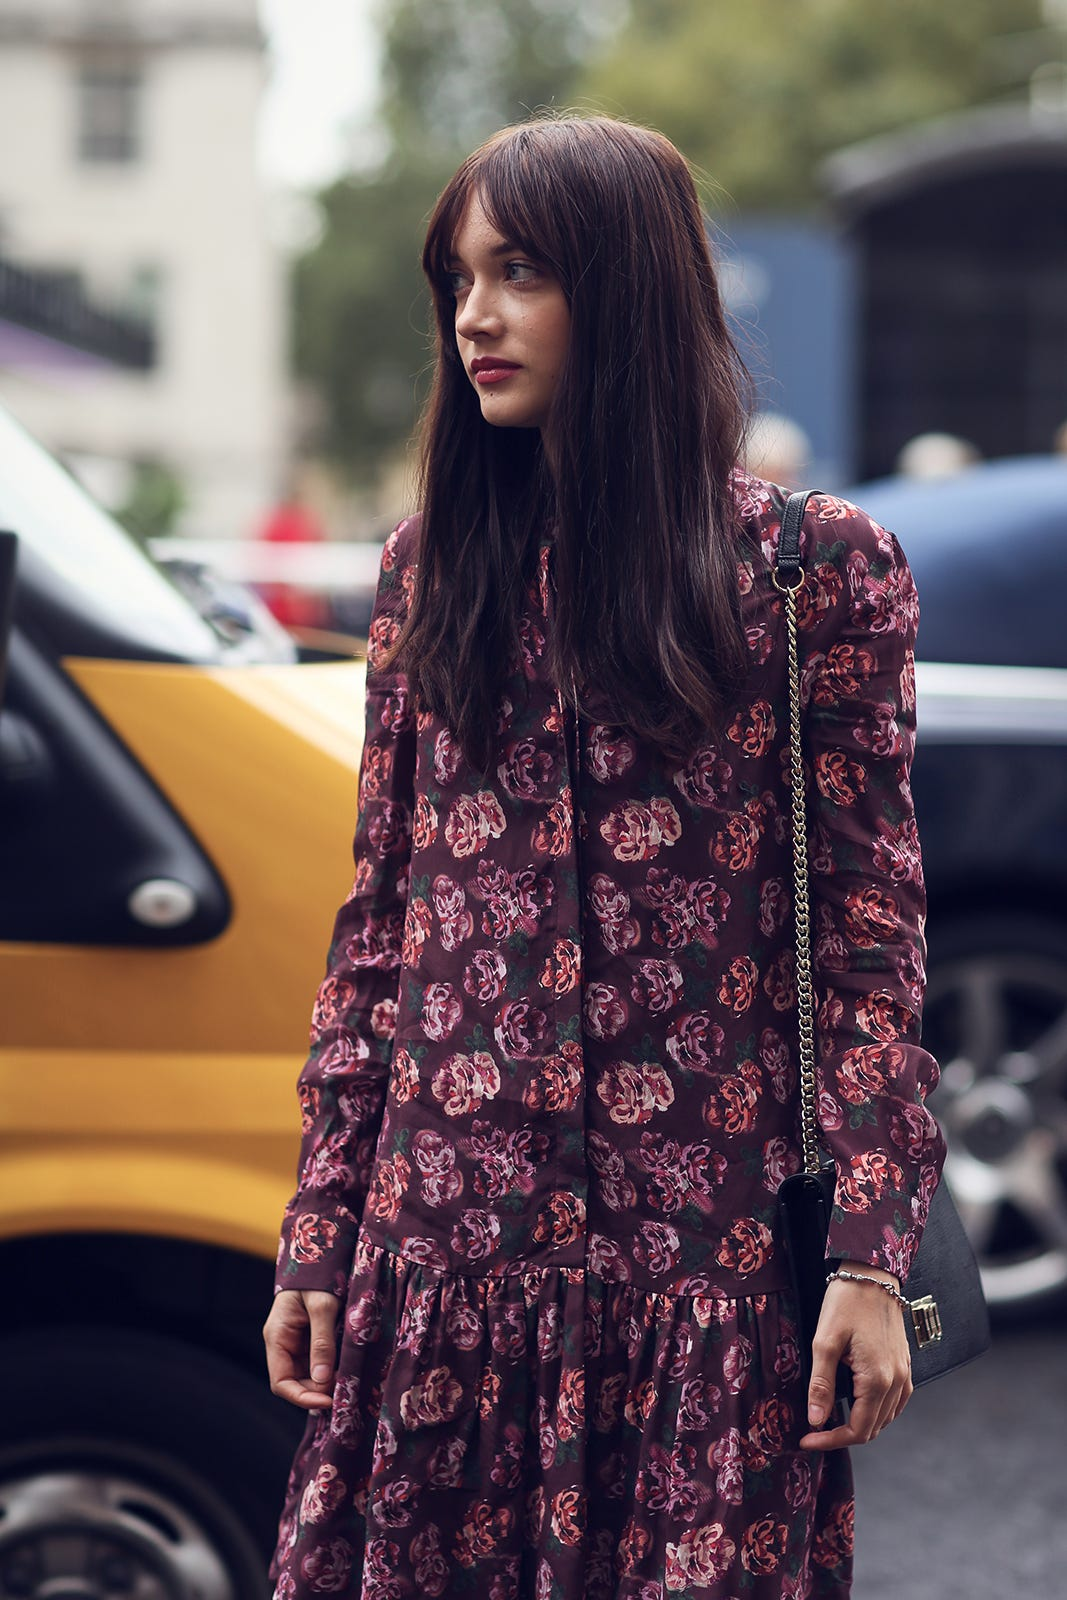 fall outfit inspiration - lfw street style photos 2016